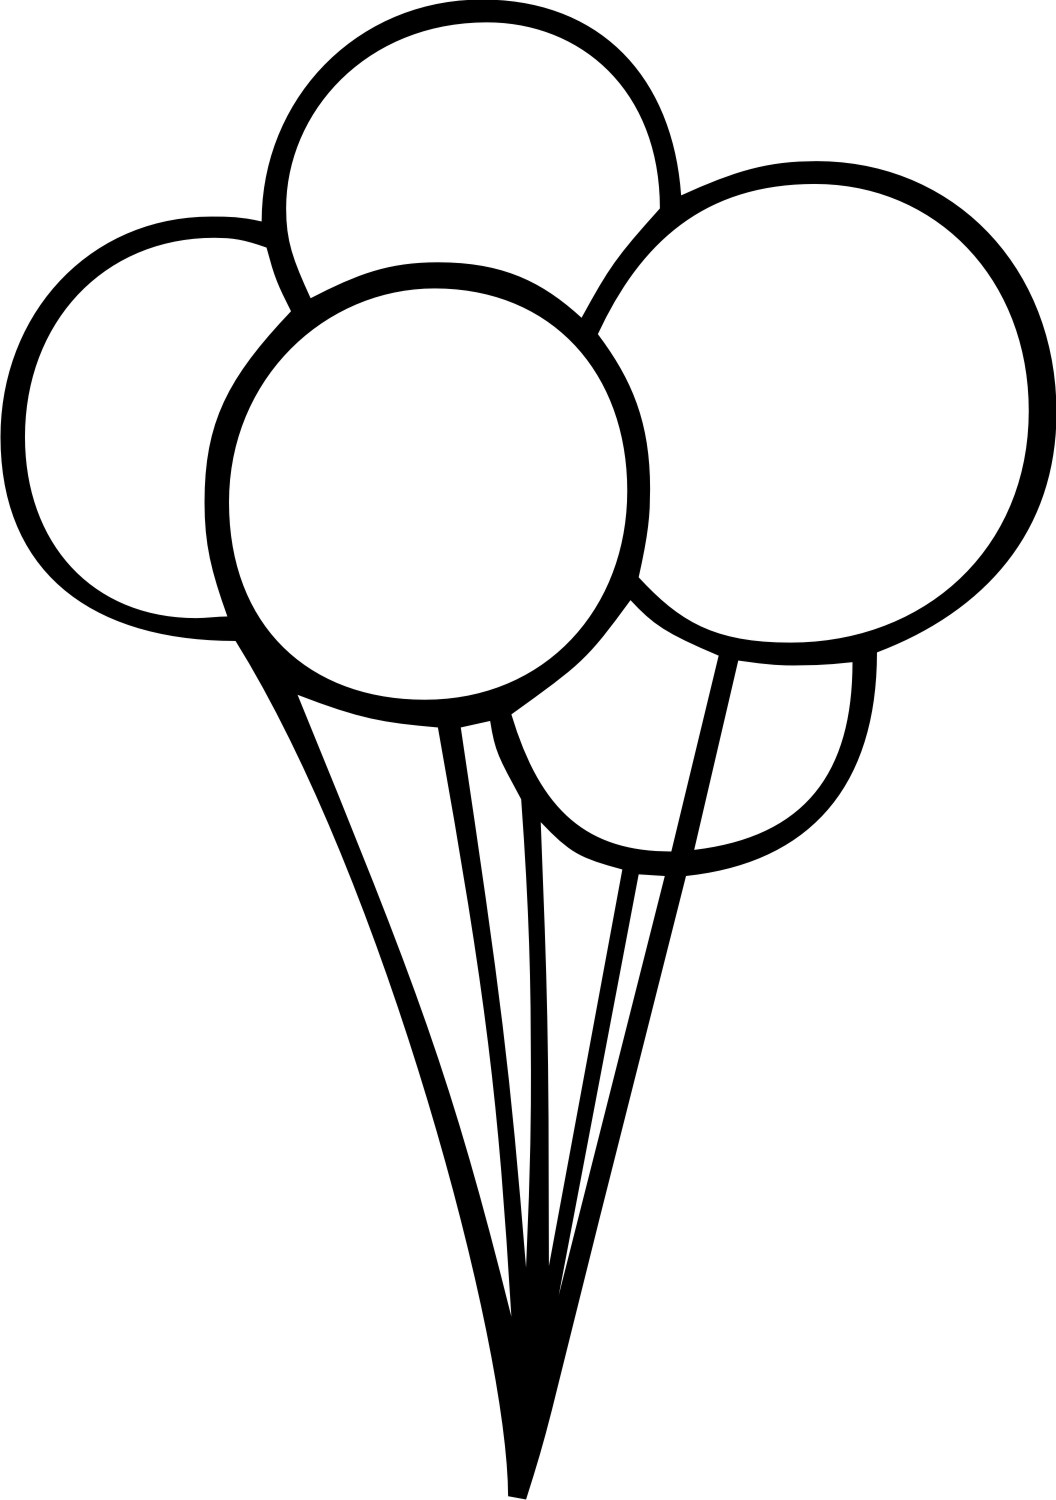 1056x1500 Balloon clipart outline